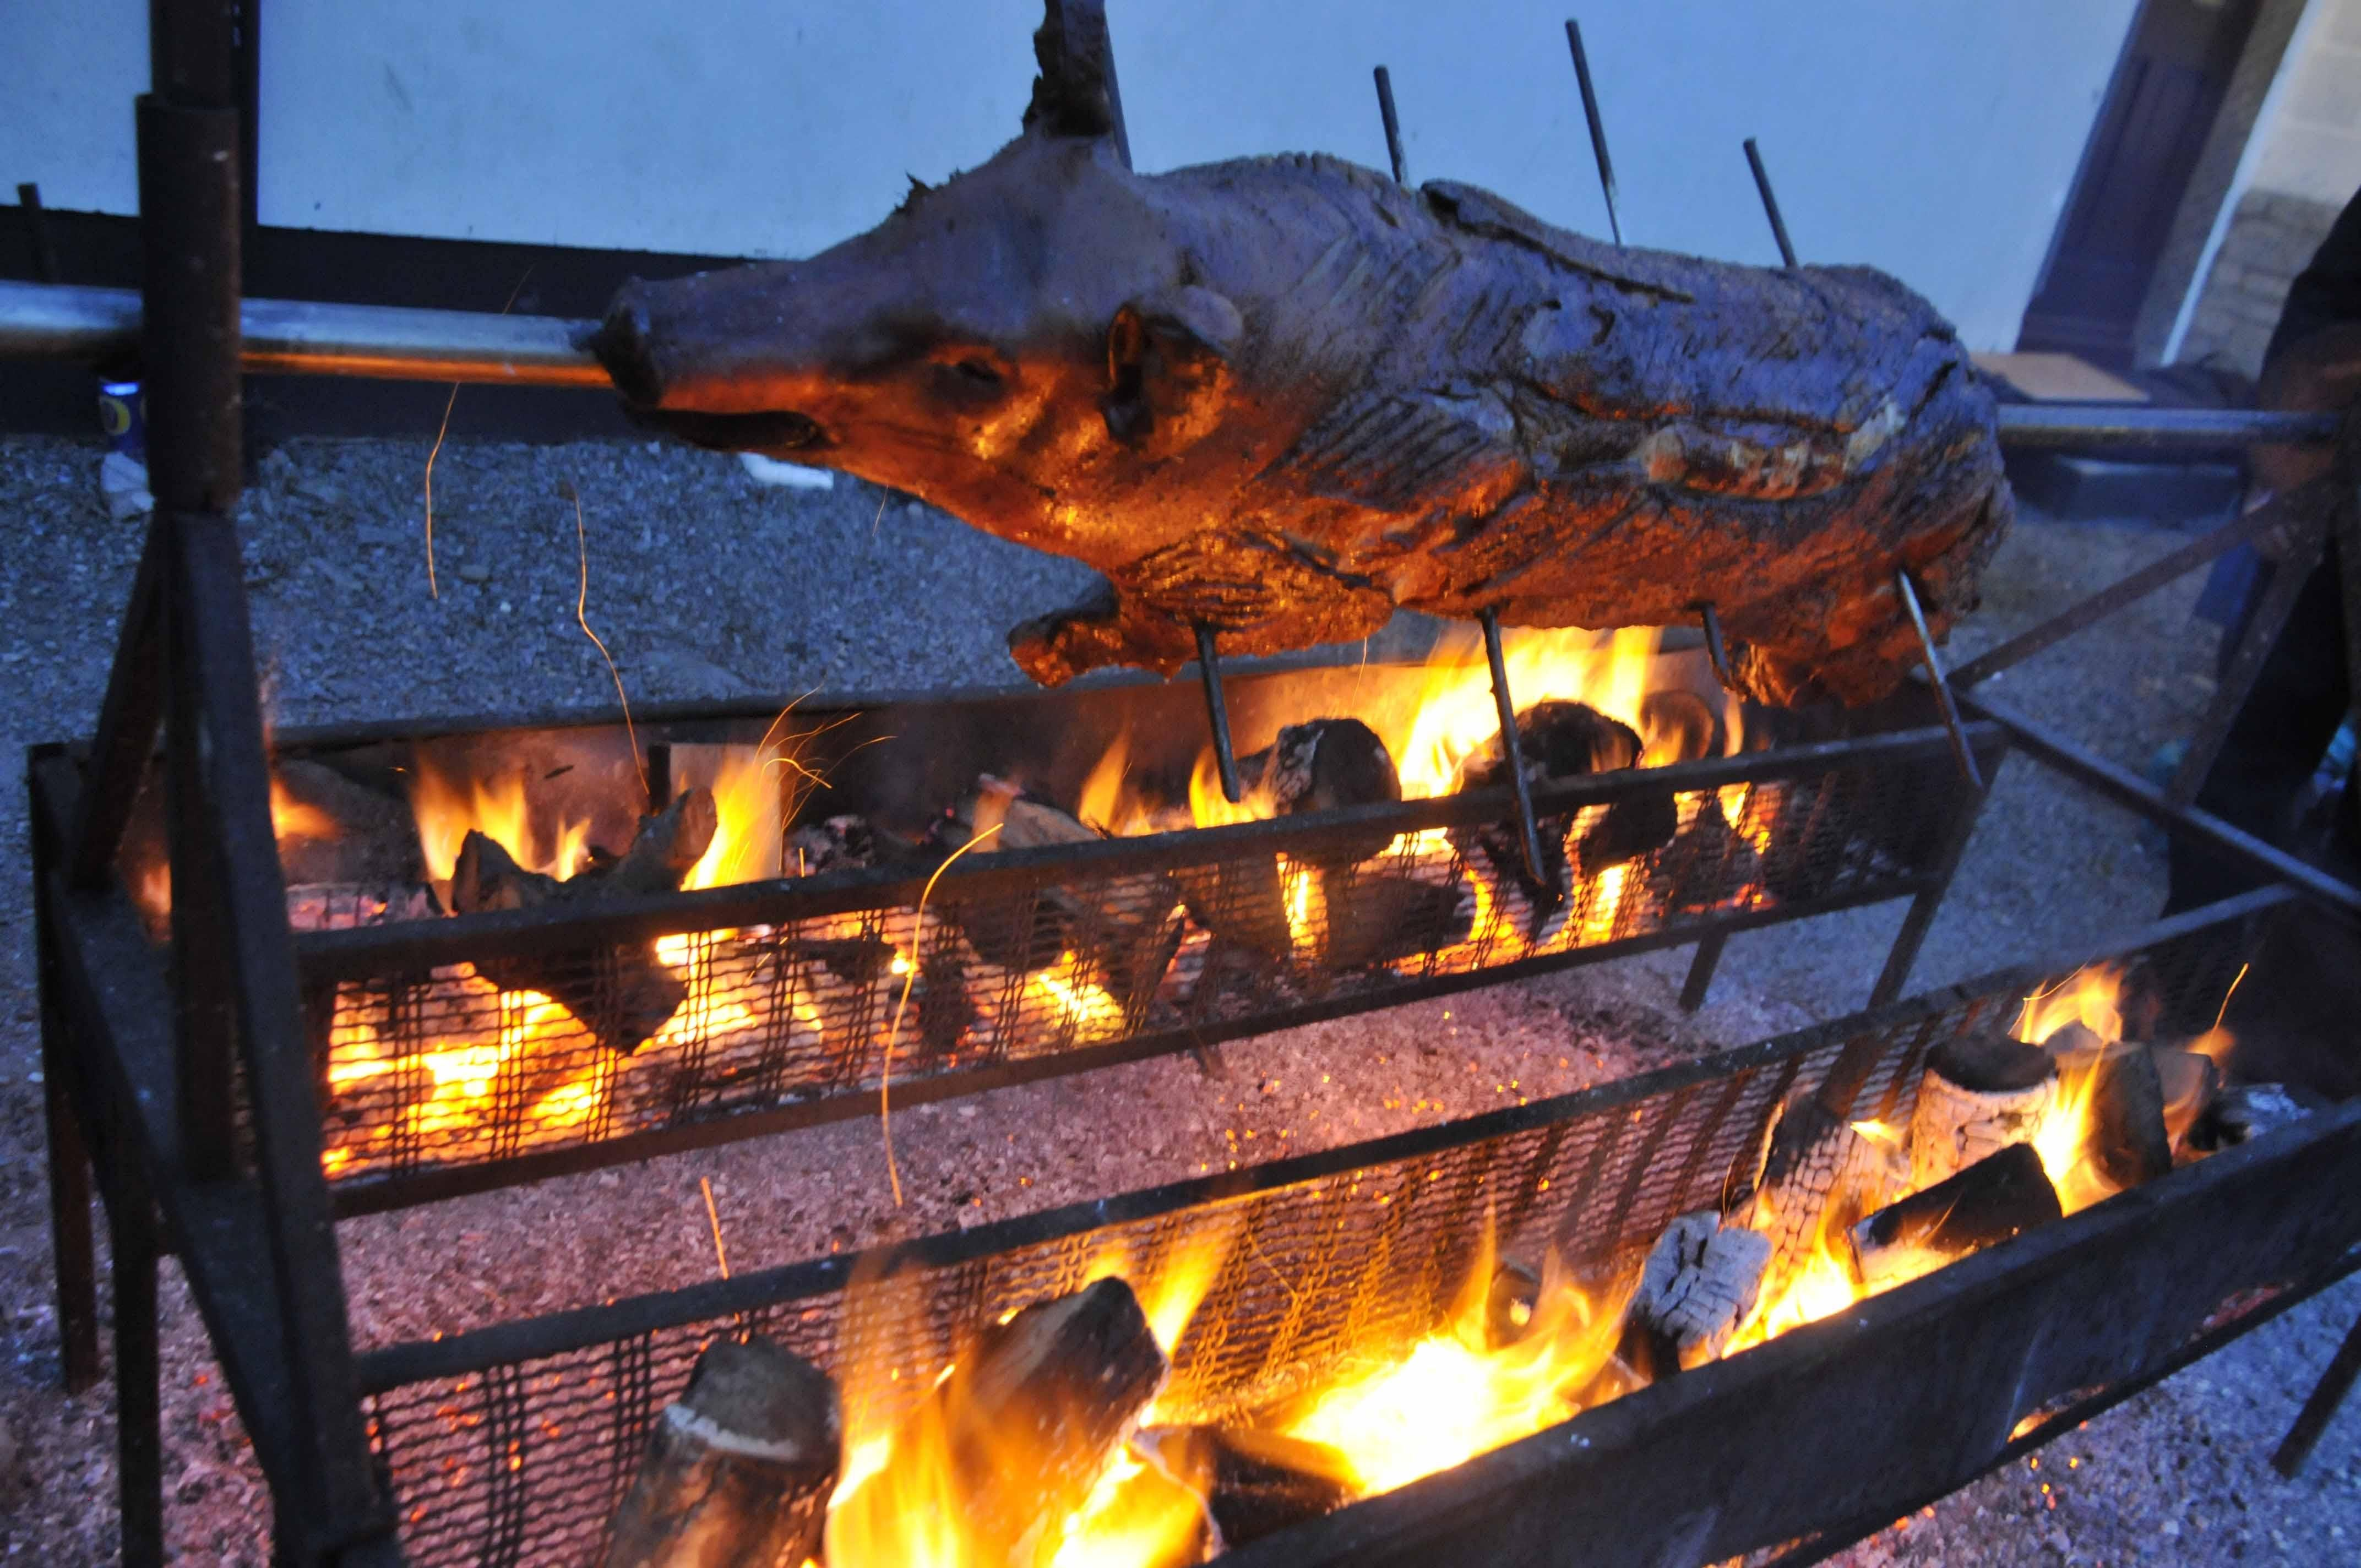 Hog Roast On A Spit Very Popular With Our Guests Bbqville By